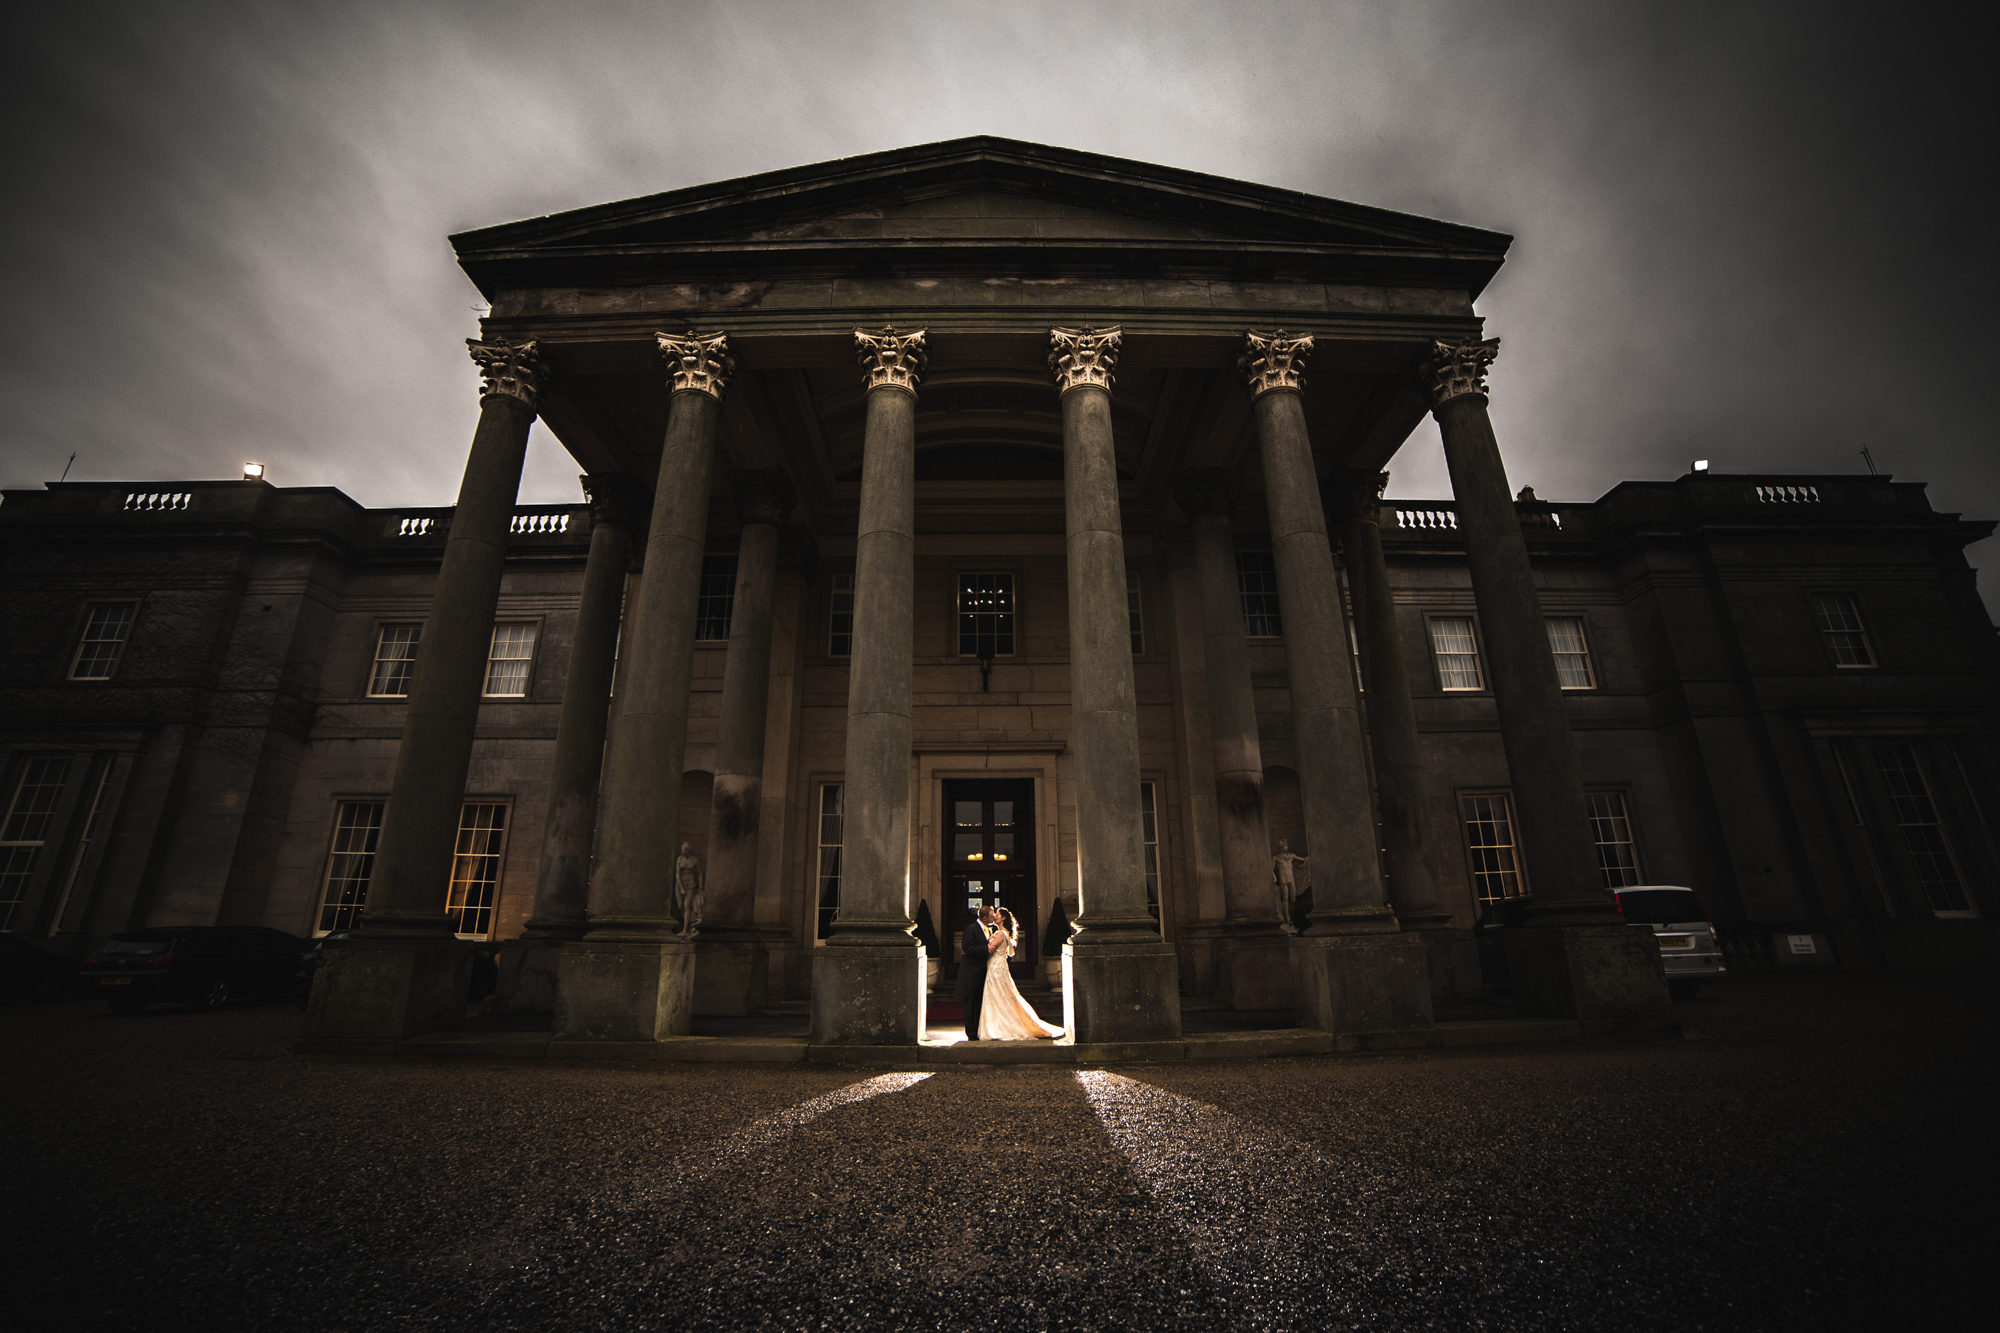 wynyard hall wedding photographer duncan mccall-1043.jpg